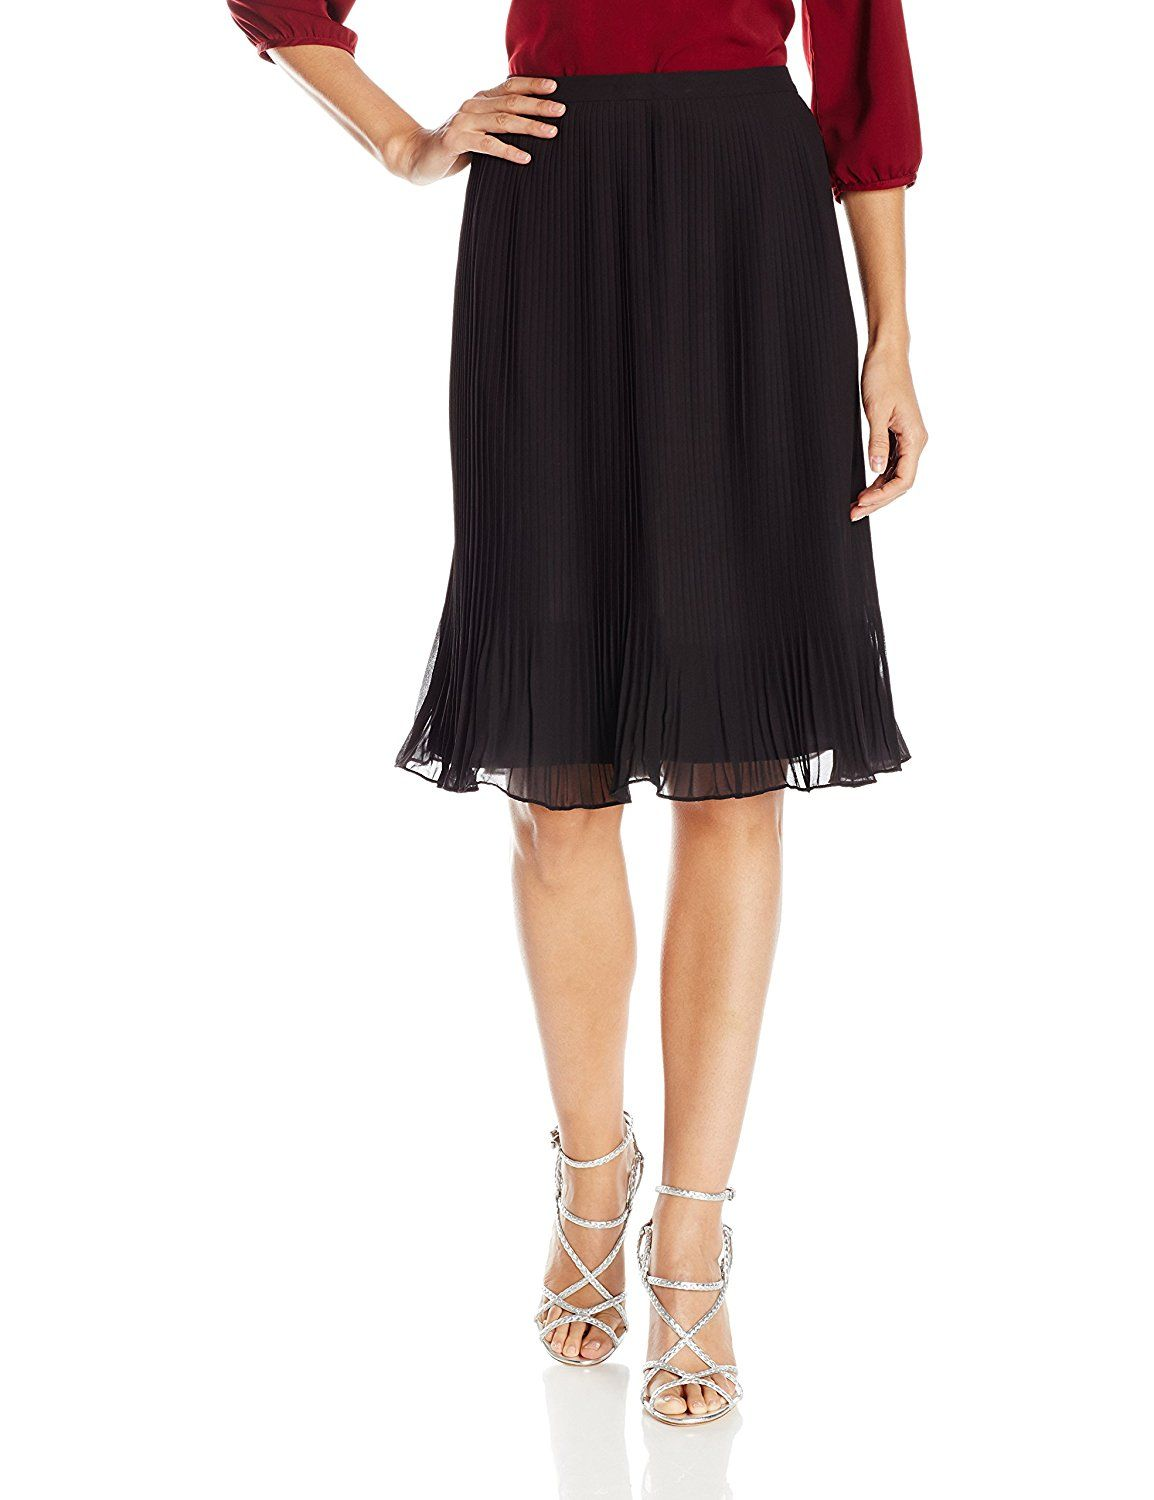 1940s Style Skirts A Line Pencil Jumper Skirts: 1940s Style Skirts: A-line, Pencil, Jumper Skirts (With